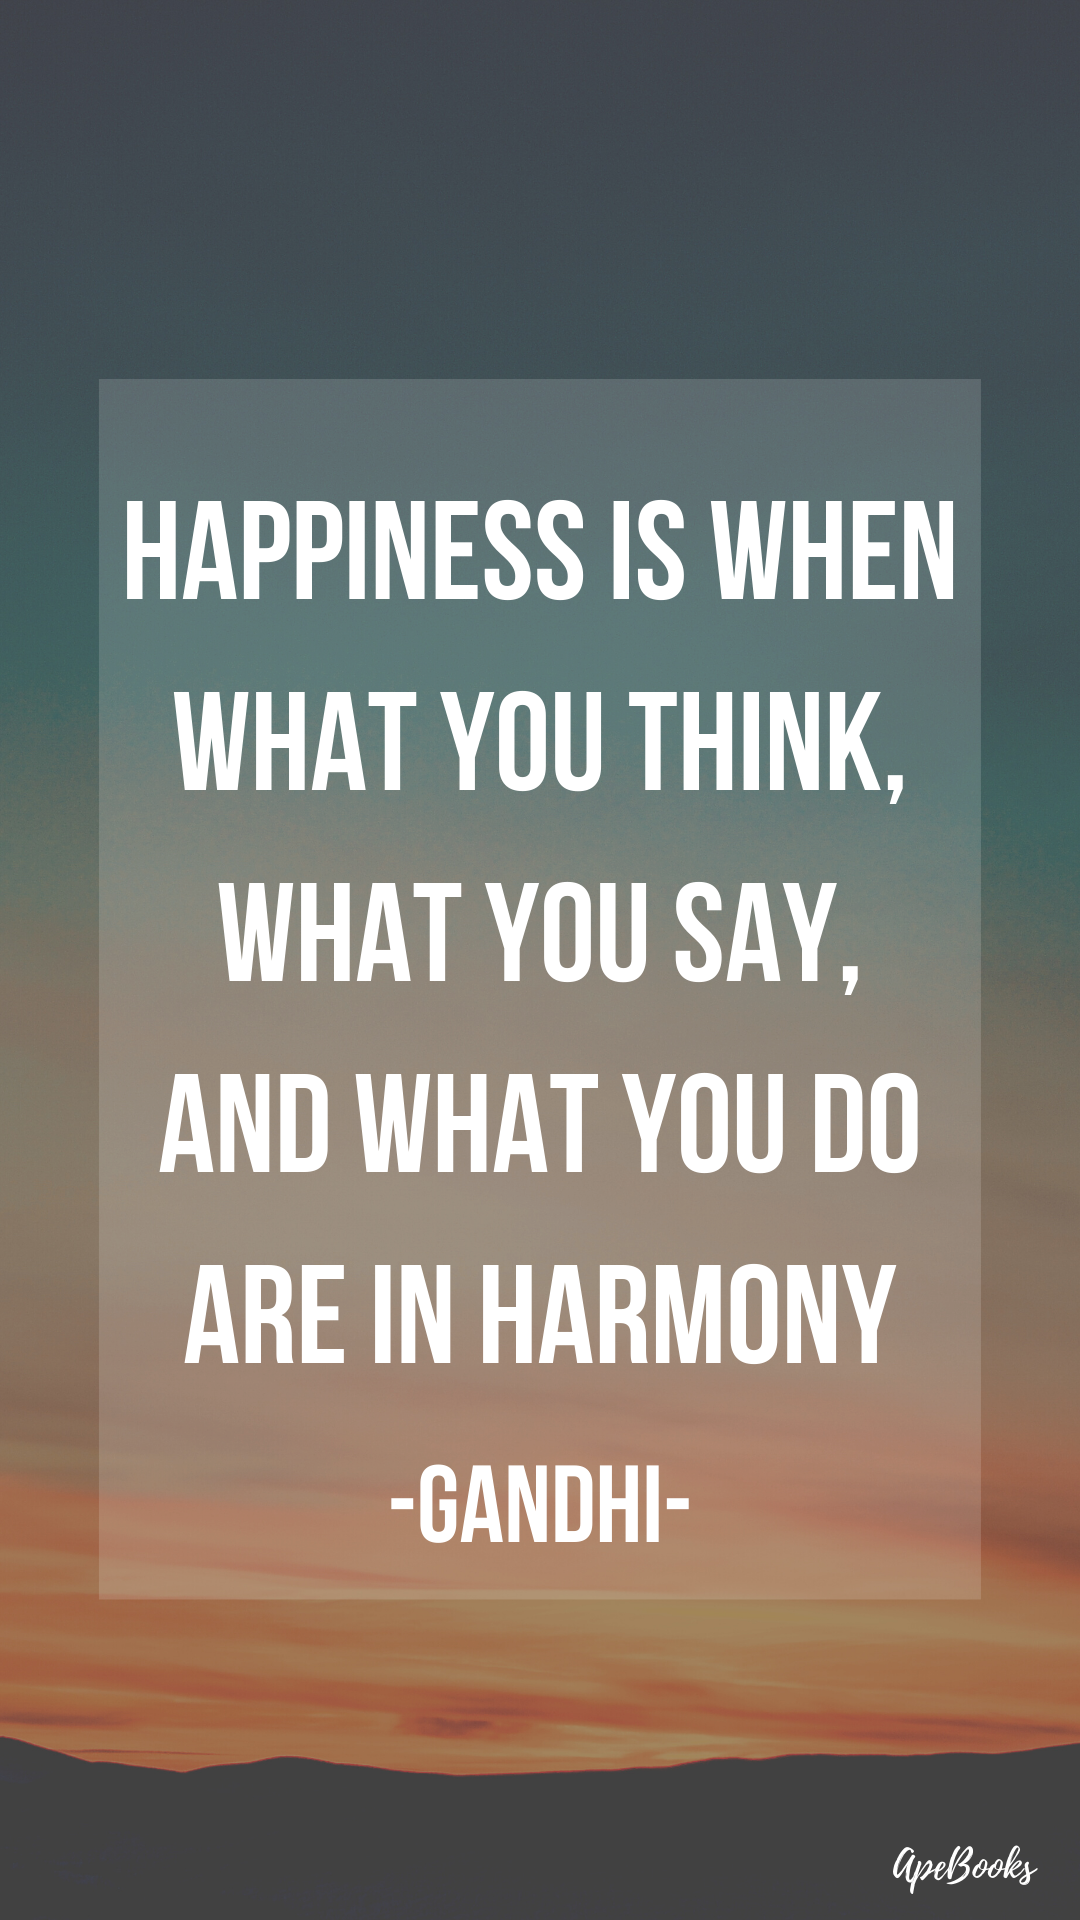 """Happiness is when what you think, what you say, and what you do are in harmony"" -Mahatma Gandhi- [1080×1920]"